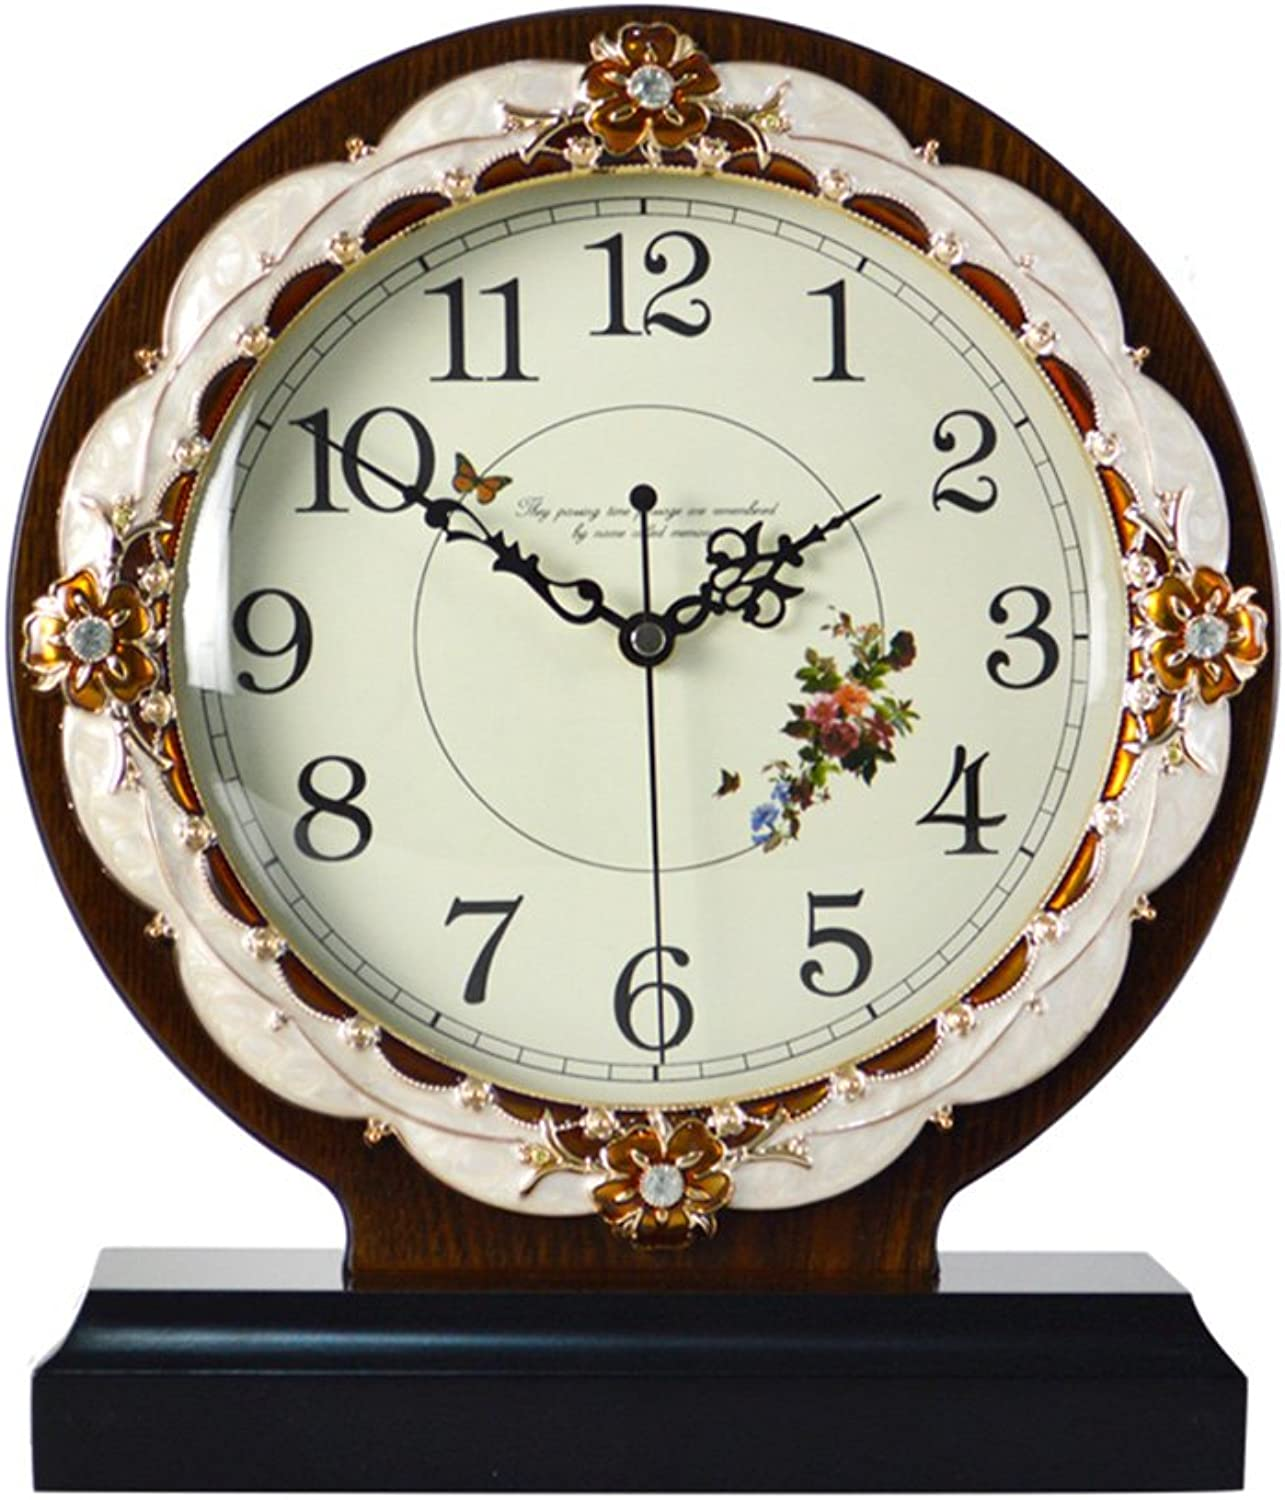 HAOFAY Table Clock, Non-Ticking, Living Room Fashion Antique Wood Frame Clock, Bedroom Desktop Pendulum Pieces 12.2 ×9.8 ×3.1 (Coffee color)